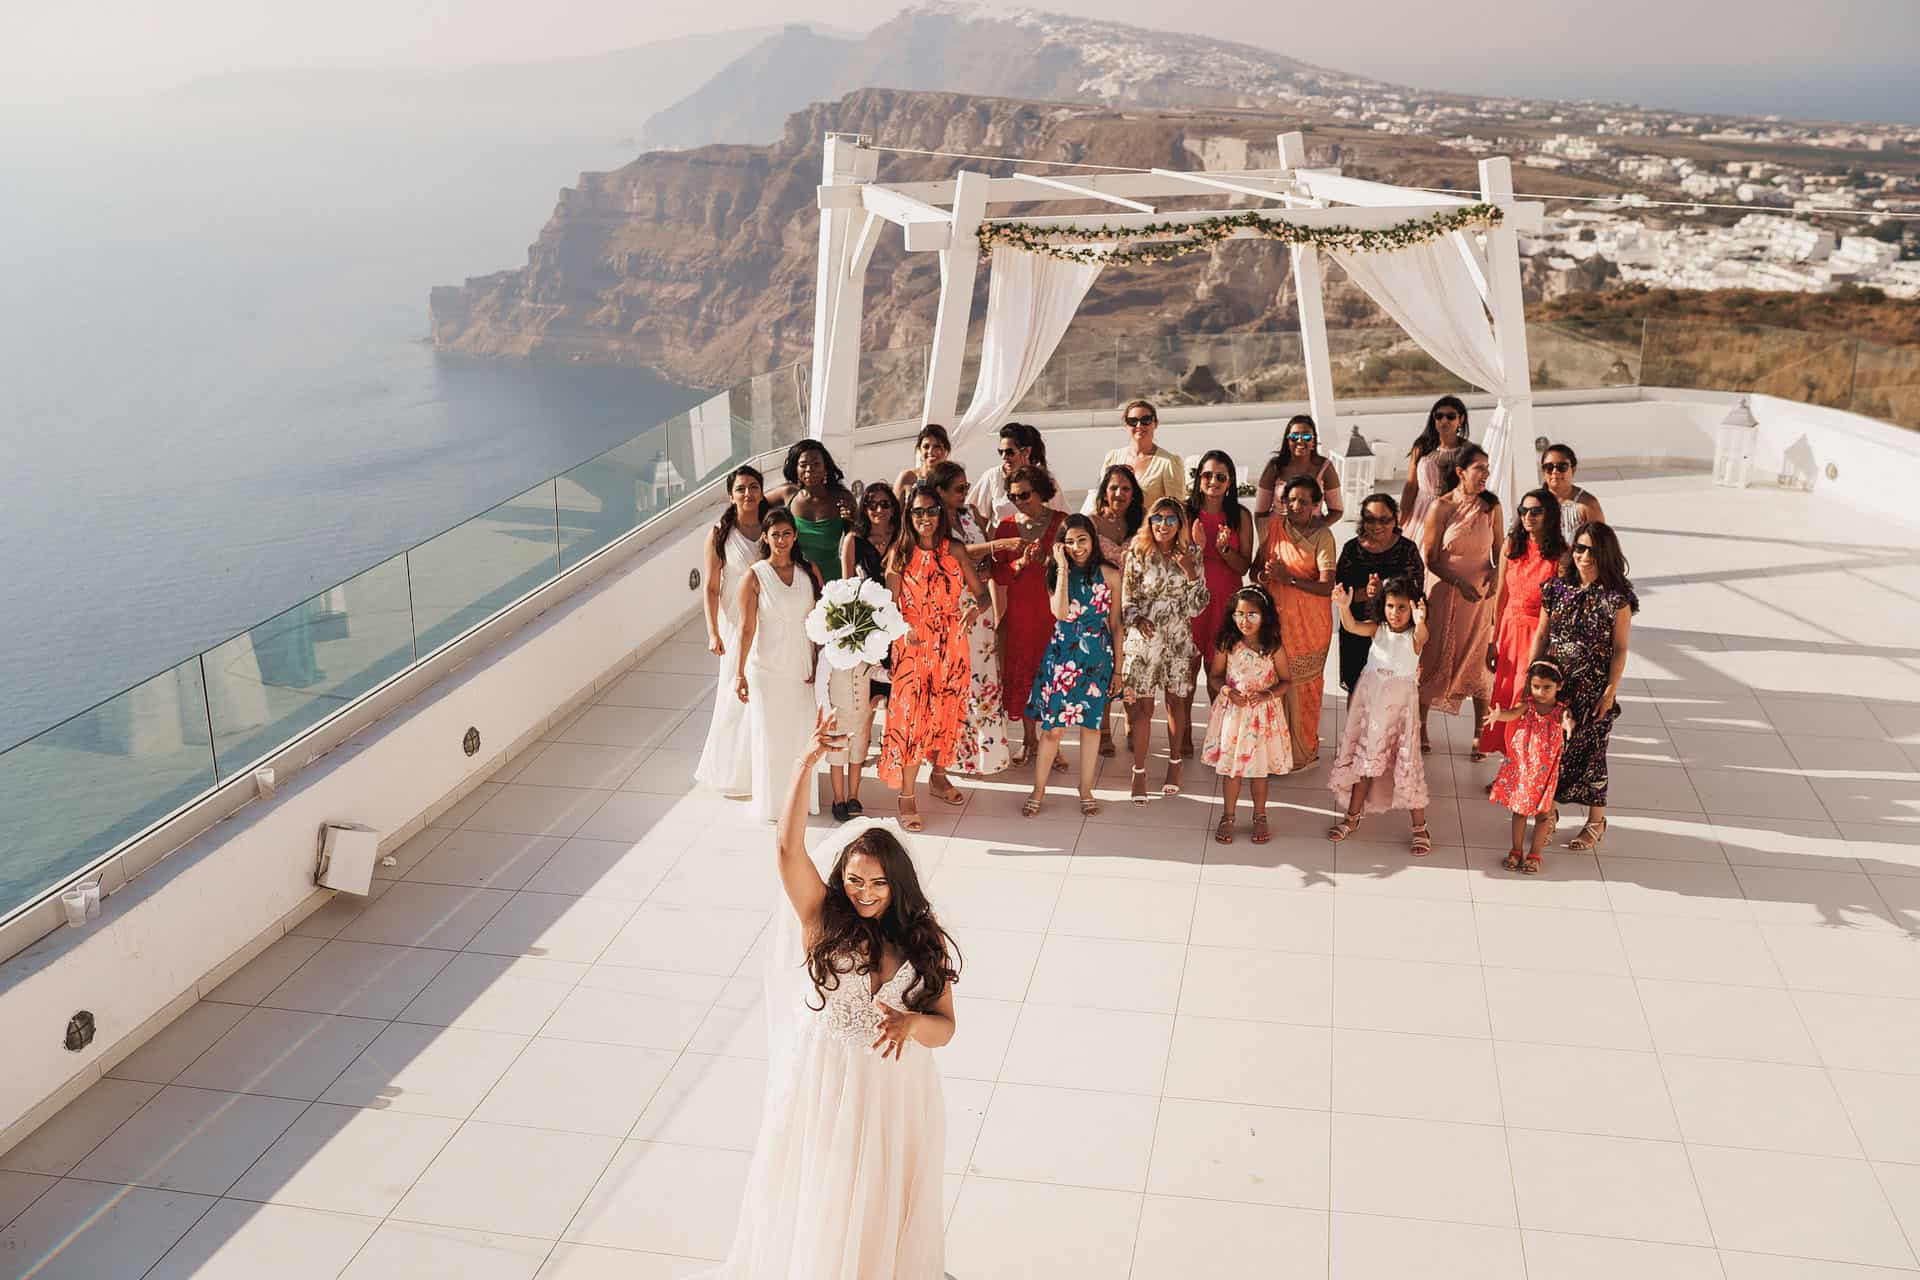 santo winery santorini wedding photos0016